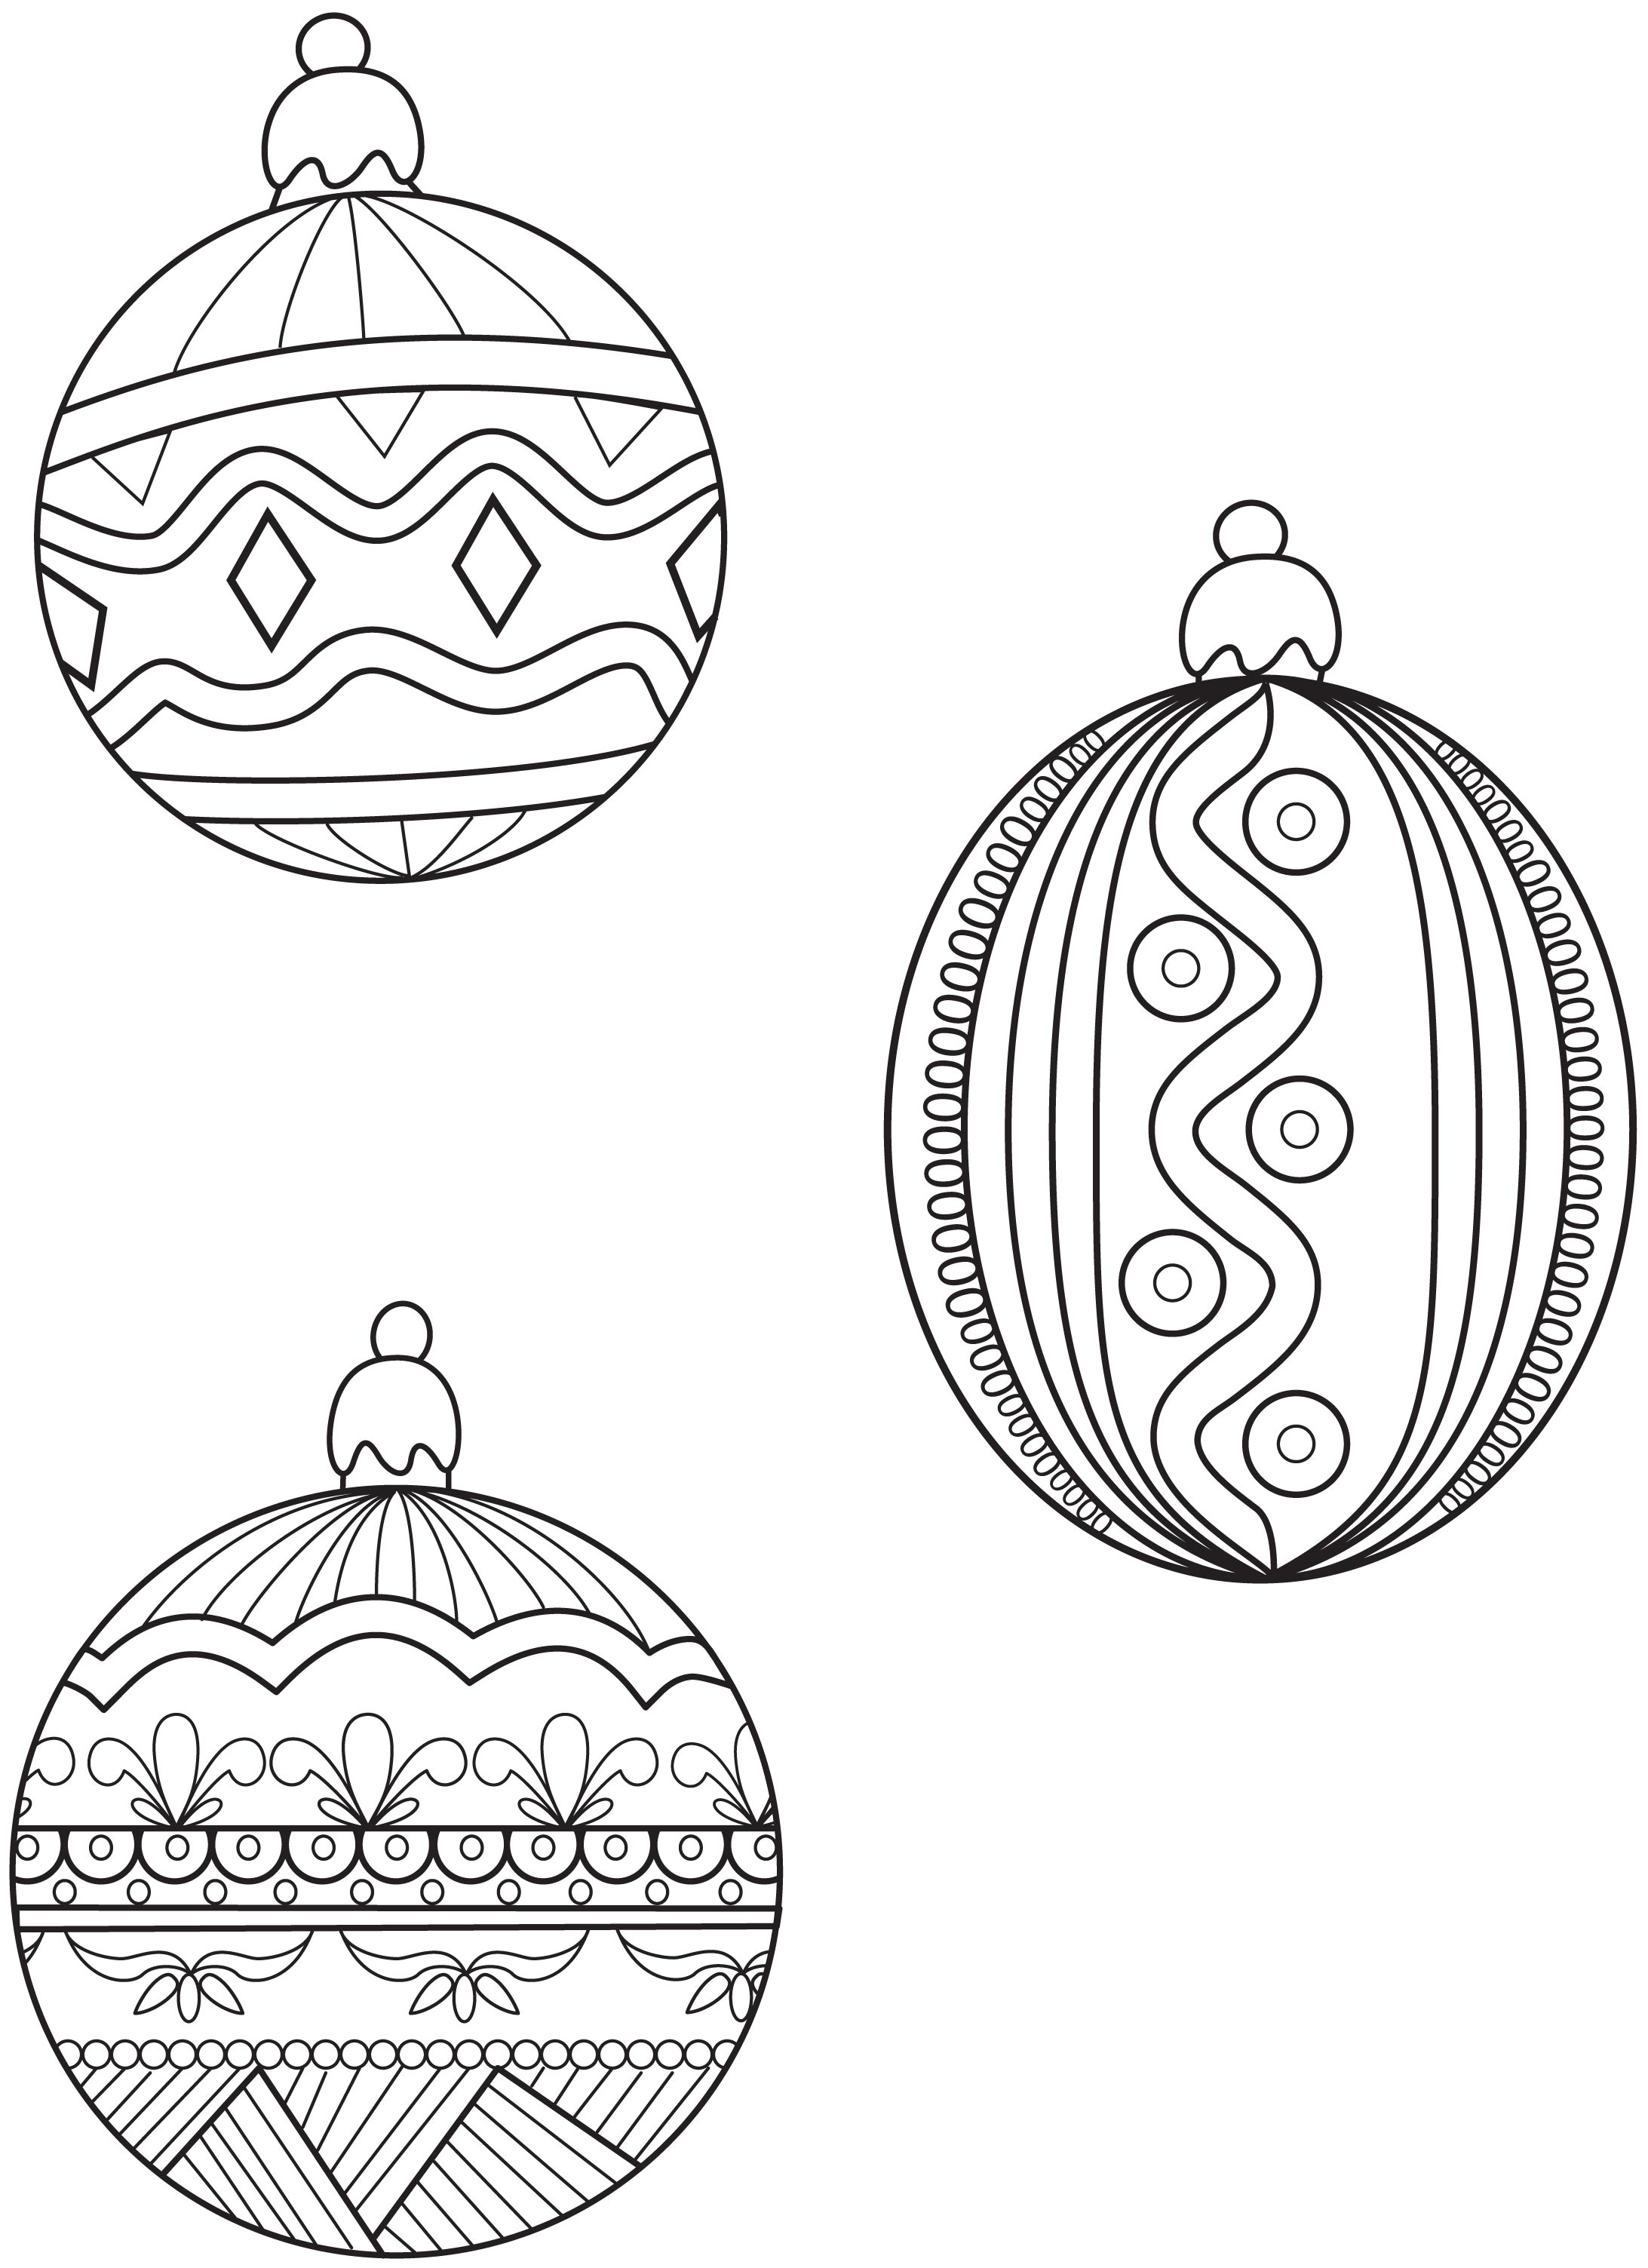 ornament printable coloring pages - photo#11